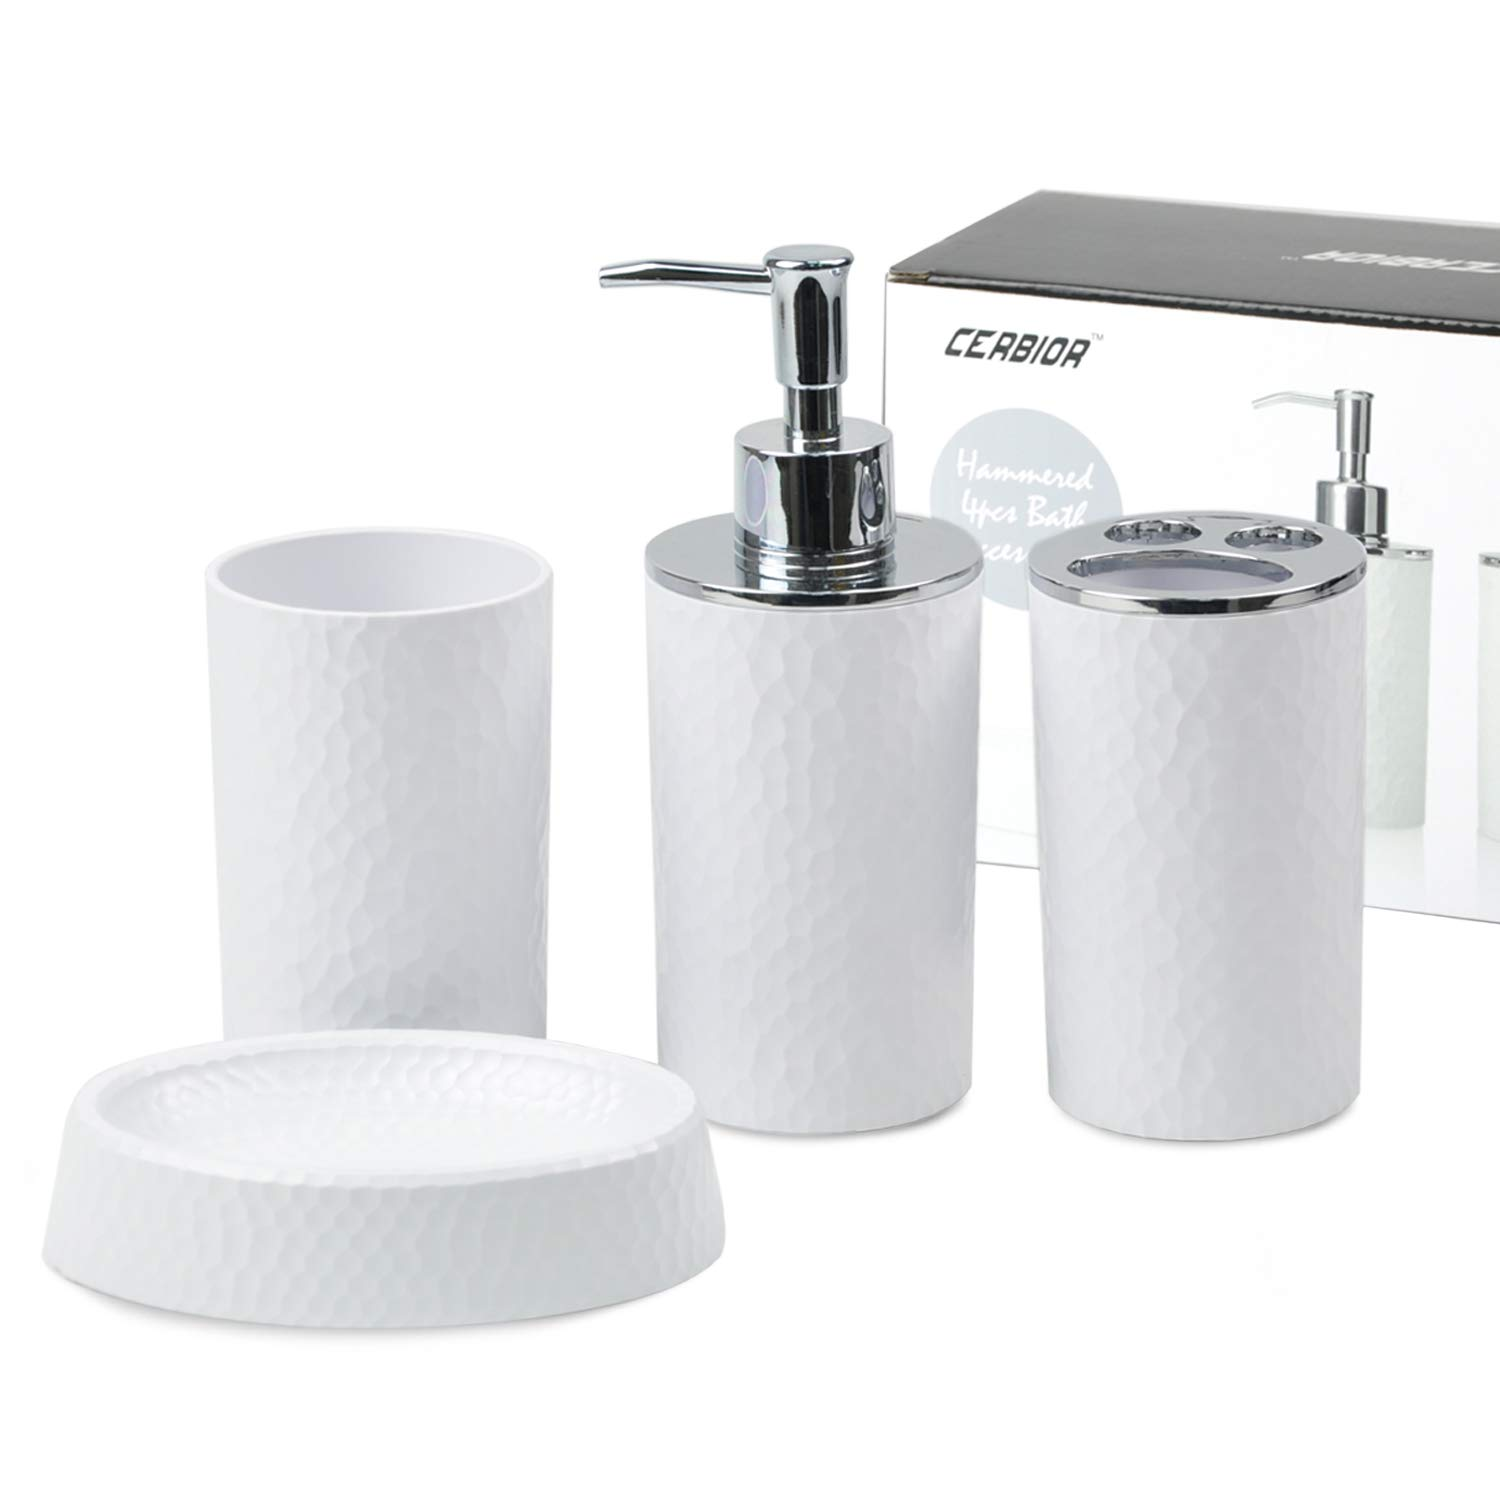 Amazoncom Cerbior Bathroom Accessories Set 4 Piece Bath Ensemble